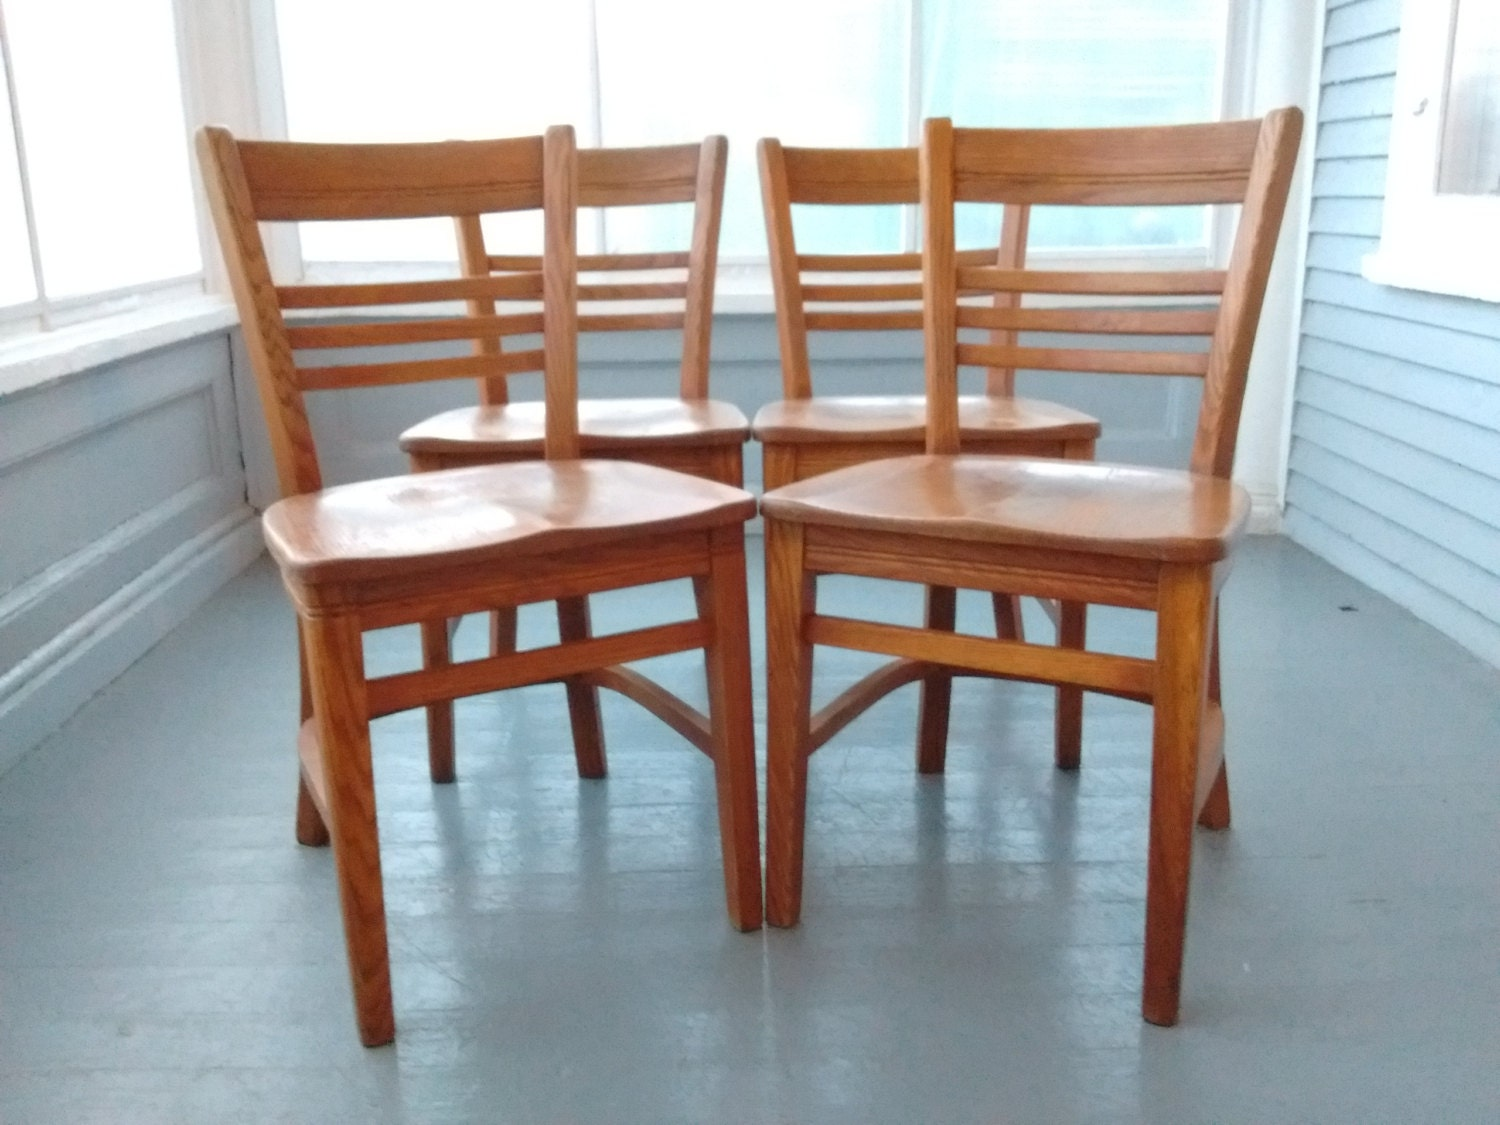 Vintage, Buckstaff, Set of Four, Kitchen Chairs, Dining Chairs, Bent ...